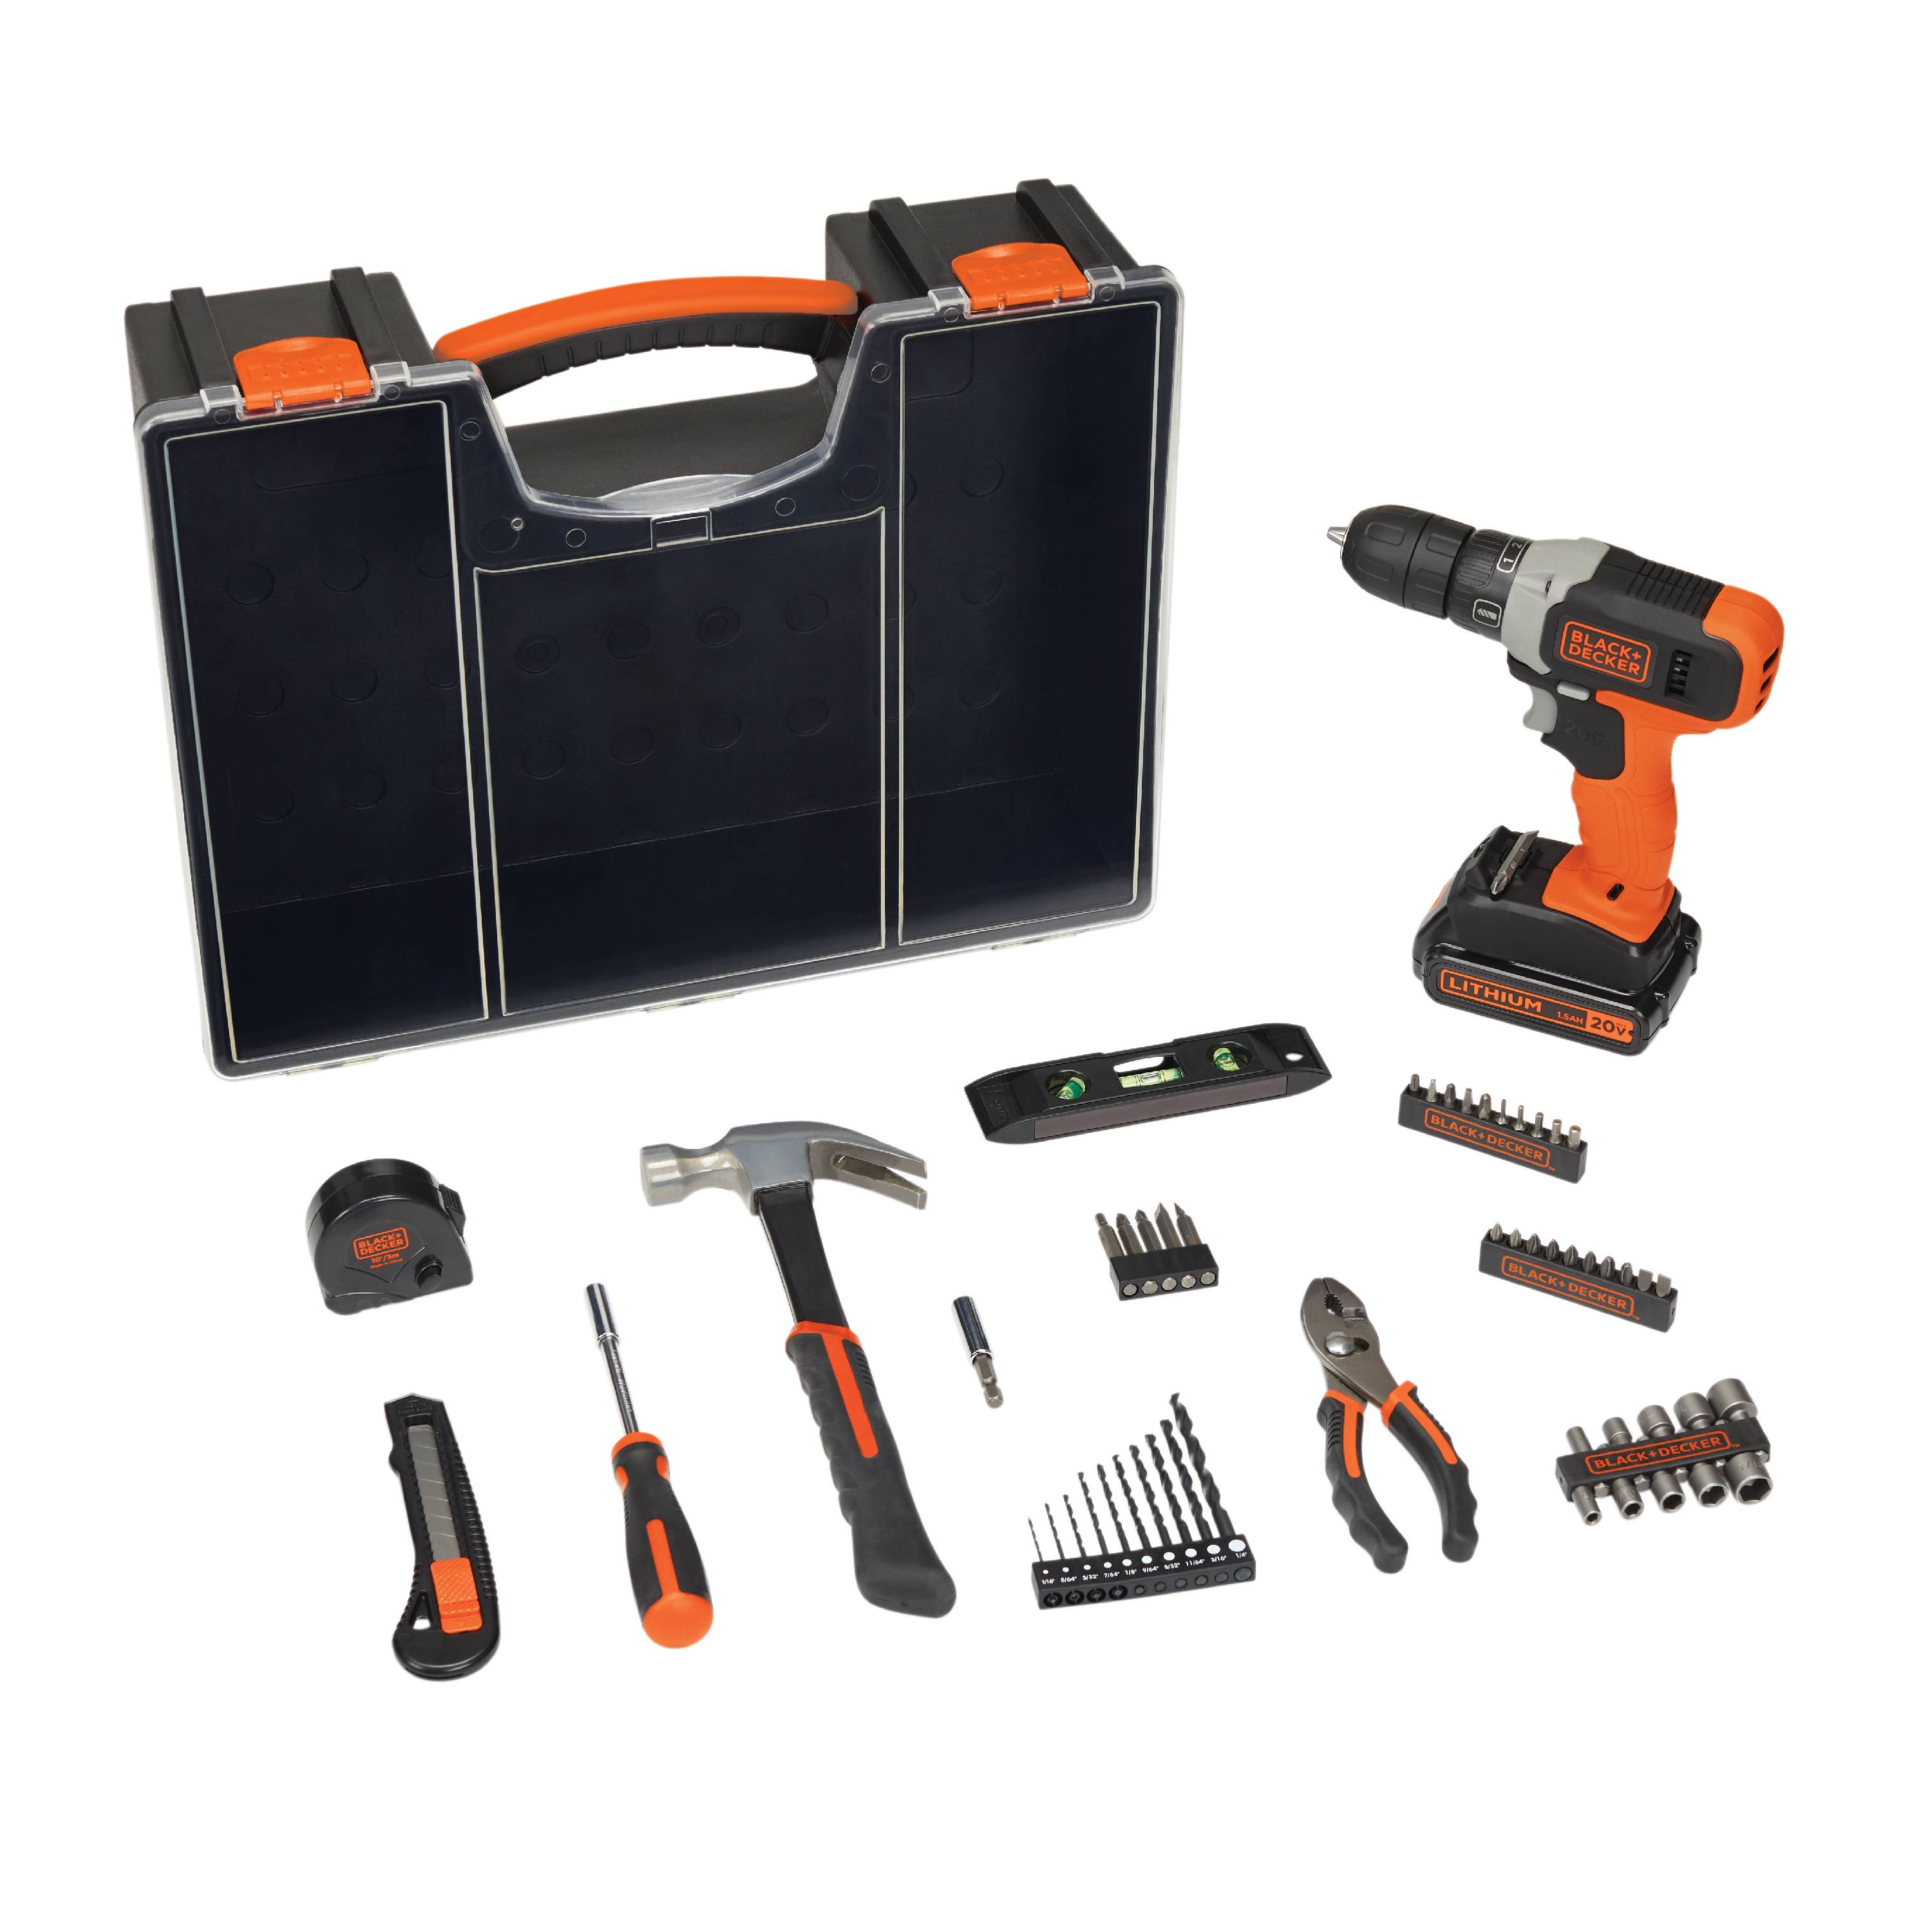 BLACK+DECKER 20-Volt MAX Drill Project Kit with 53-Pieces and Hard Case, BCD70253PKWM